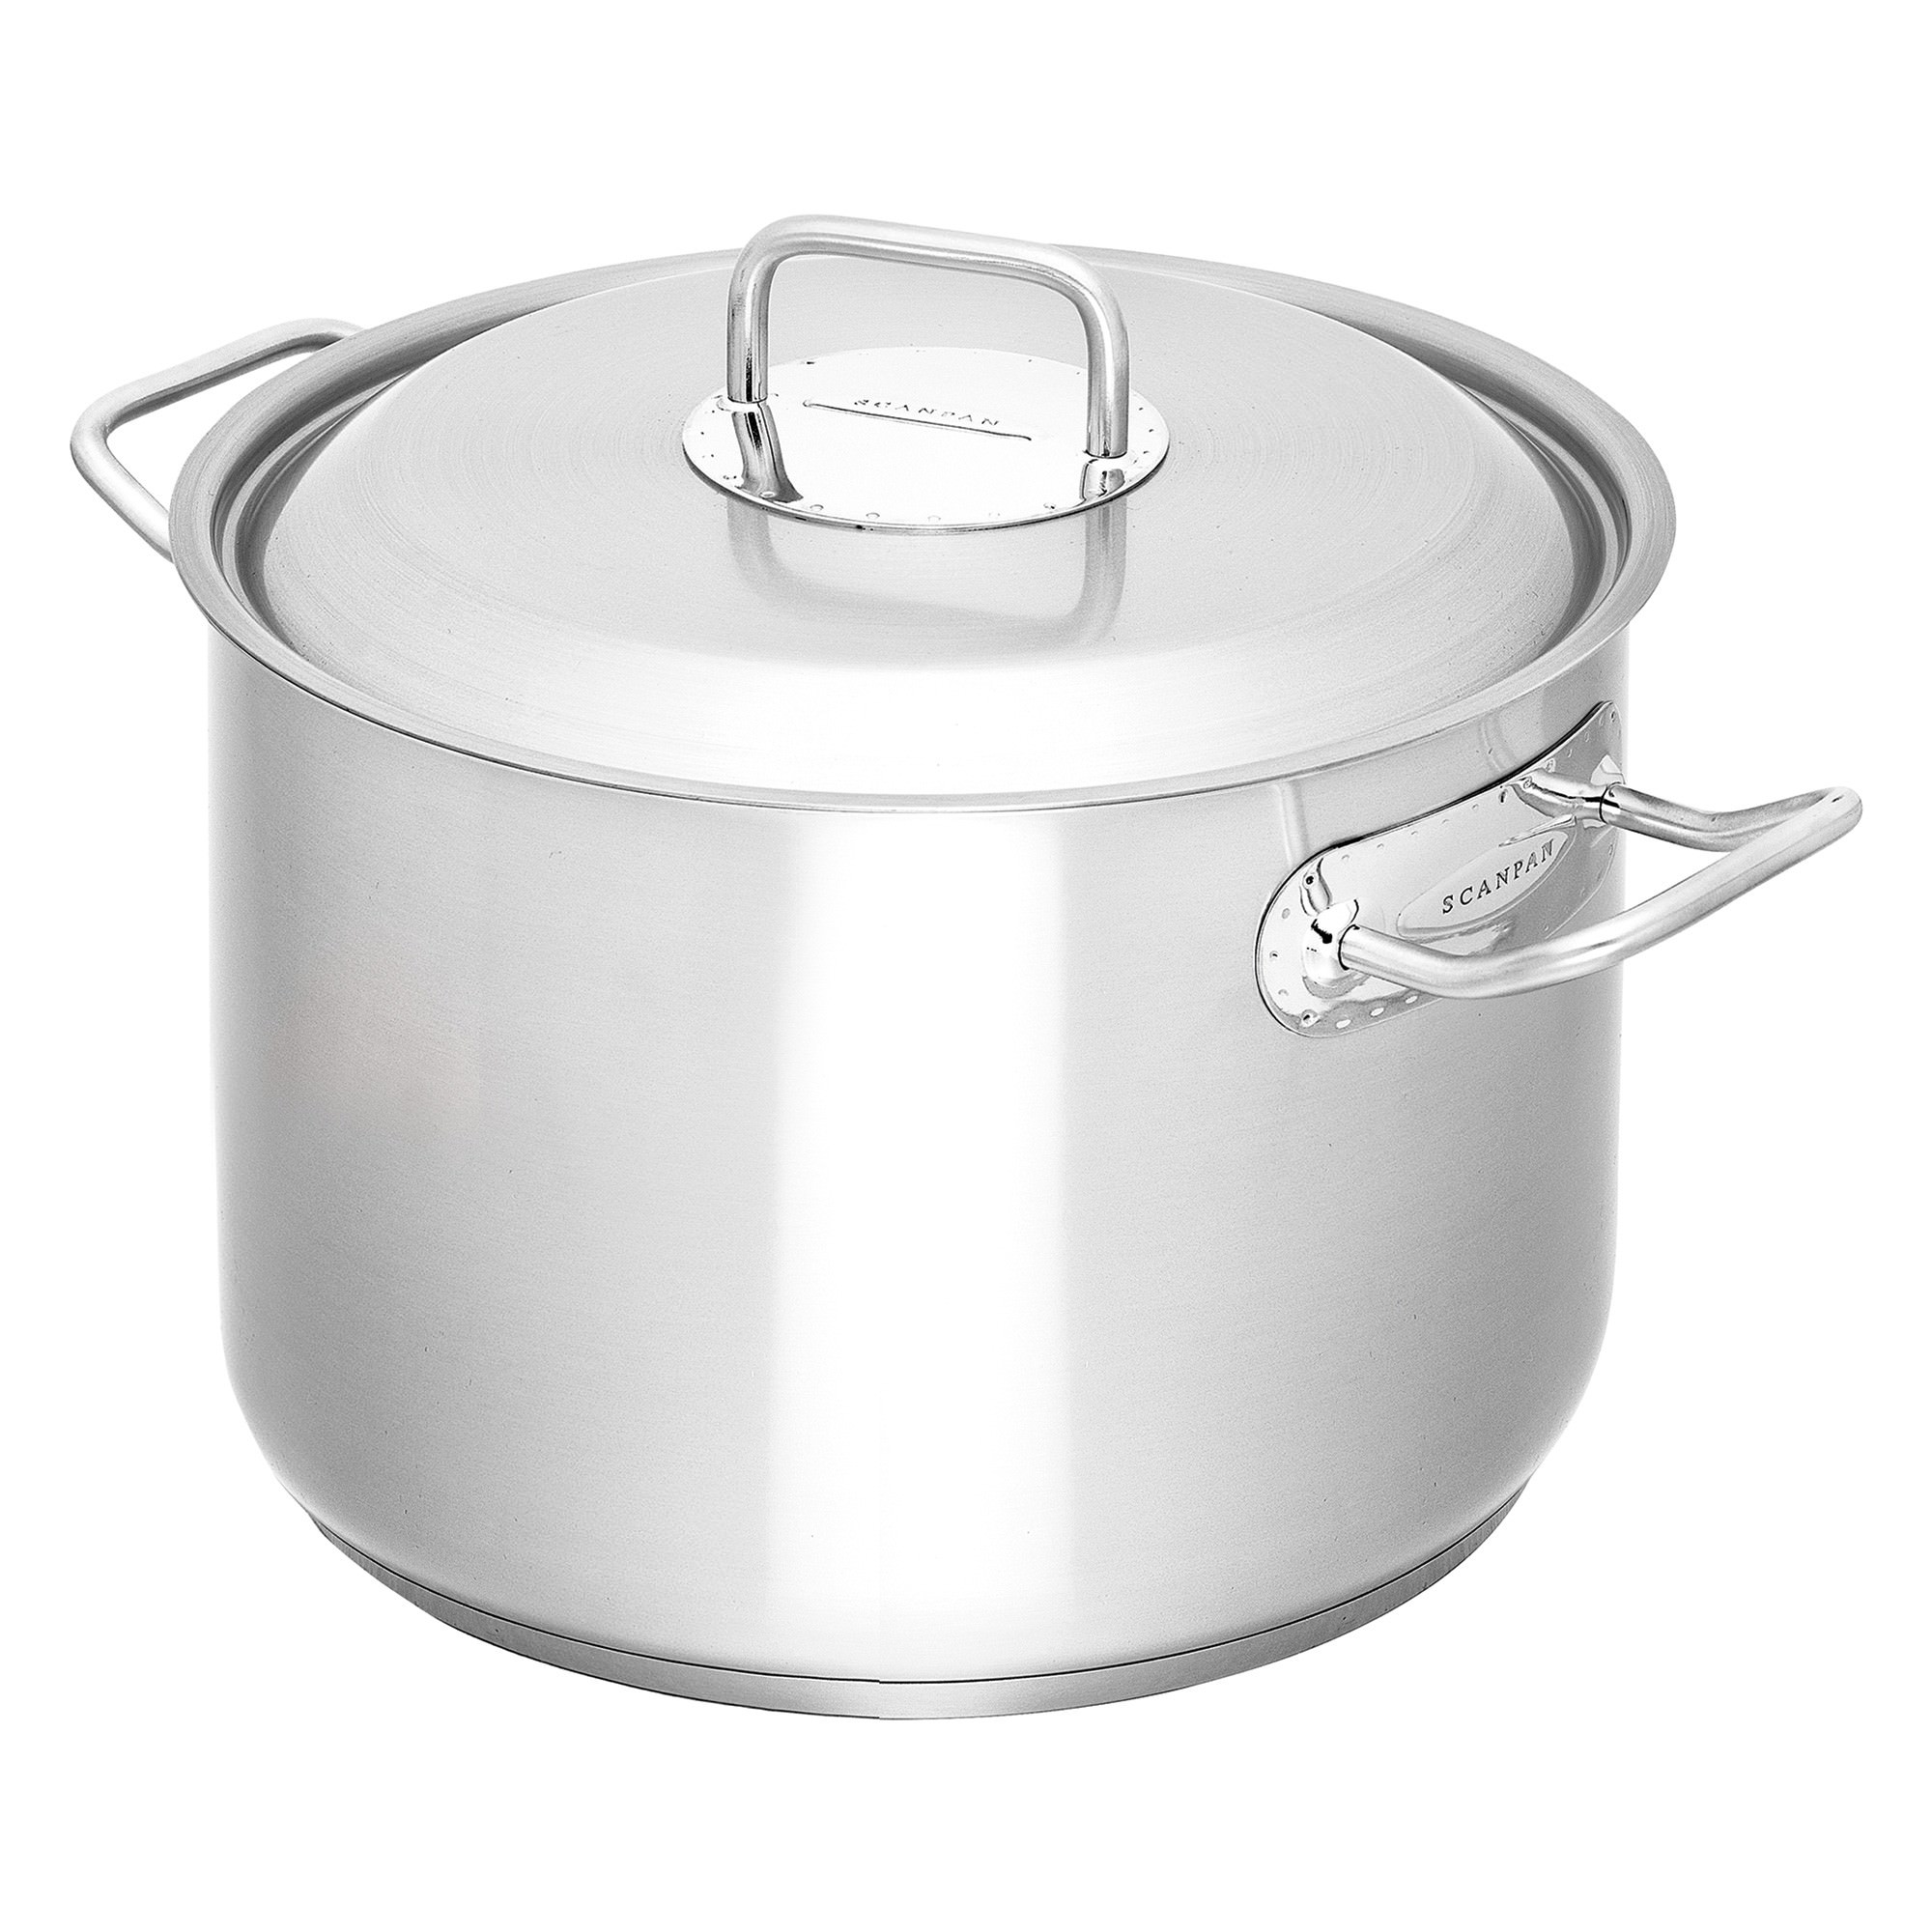 Scanpan Commercial 28cm/11L Stockpot with Lid